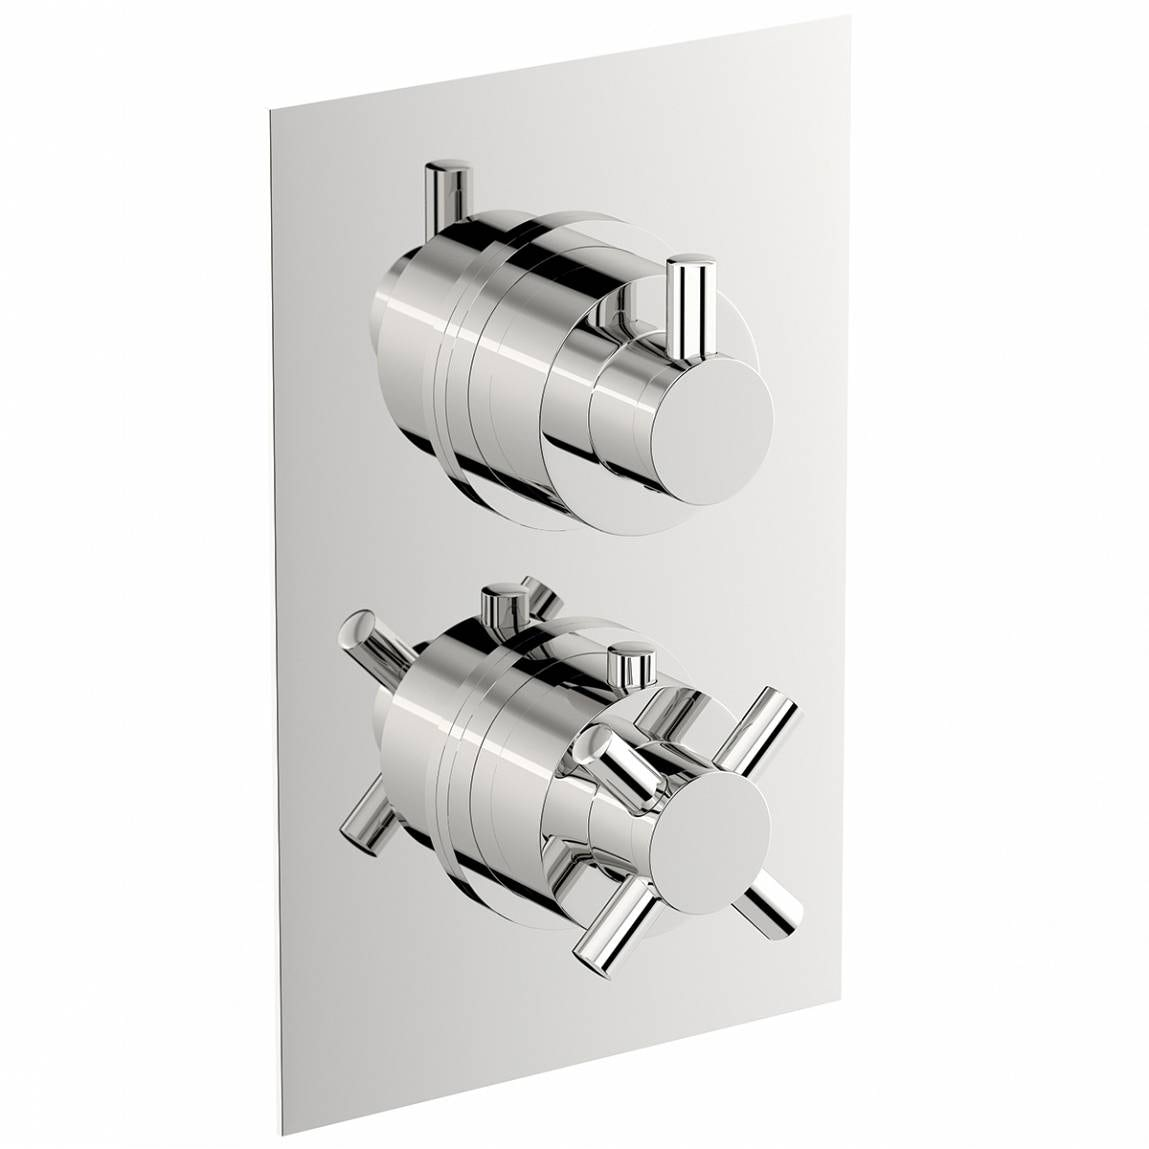 Mode Alexa square twin thermostatic shower valve with diverter